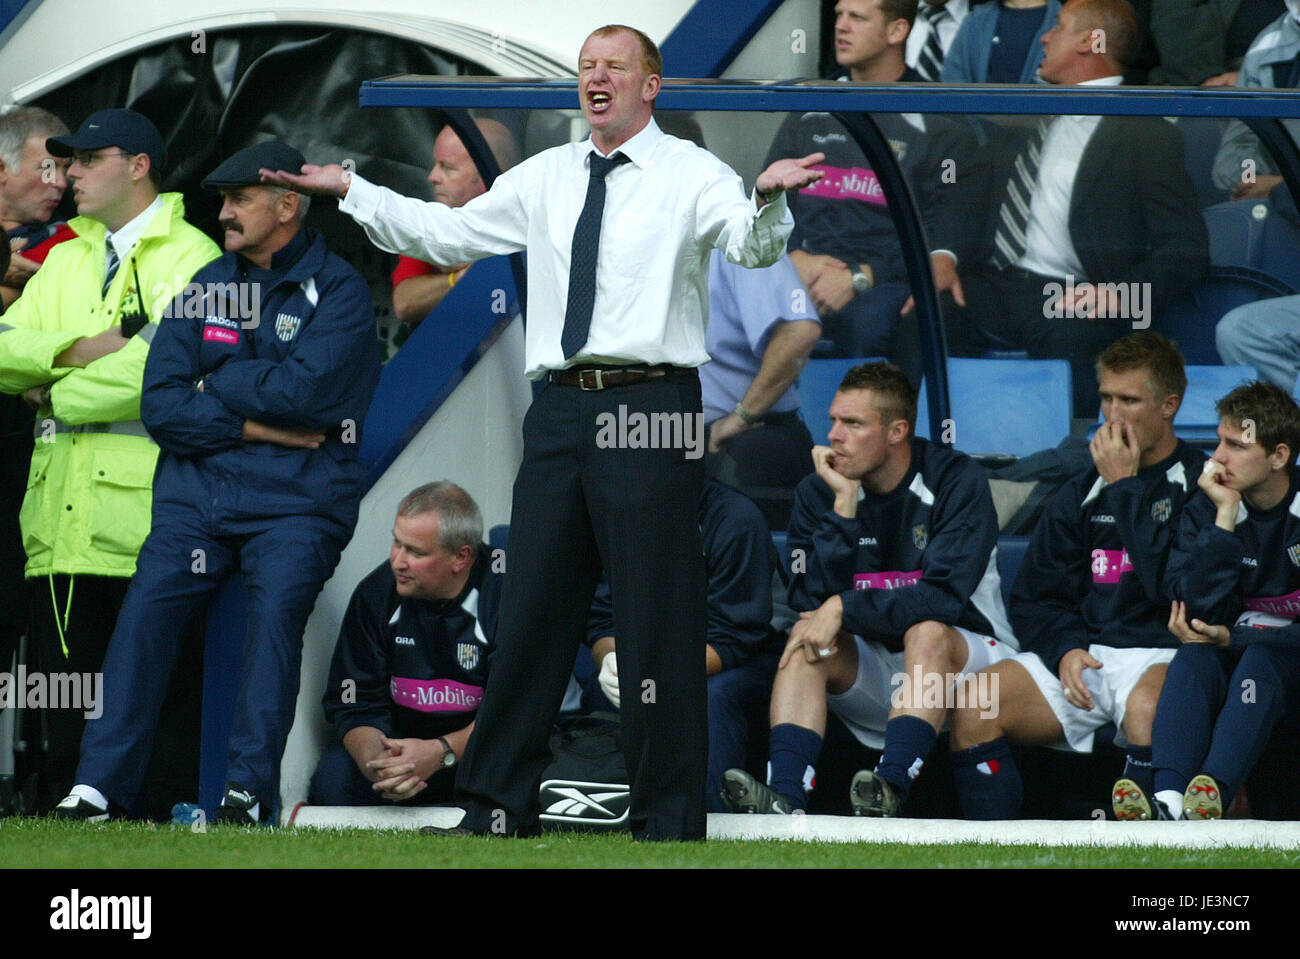 GARY MEGSON WEST BROMWICH ALBION MANAGER HORTHORNS WEST BROM Stock